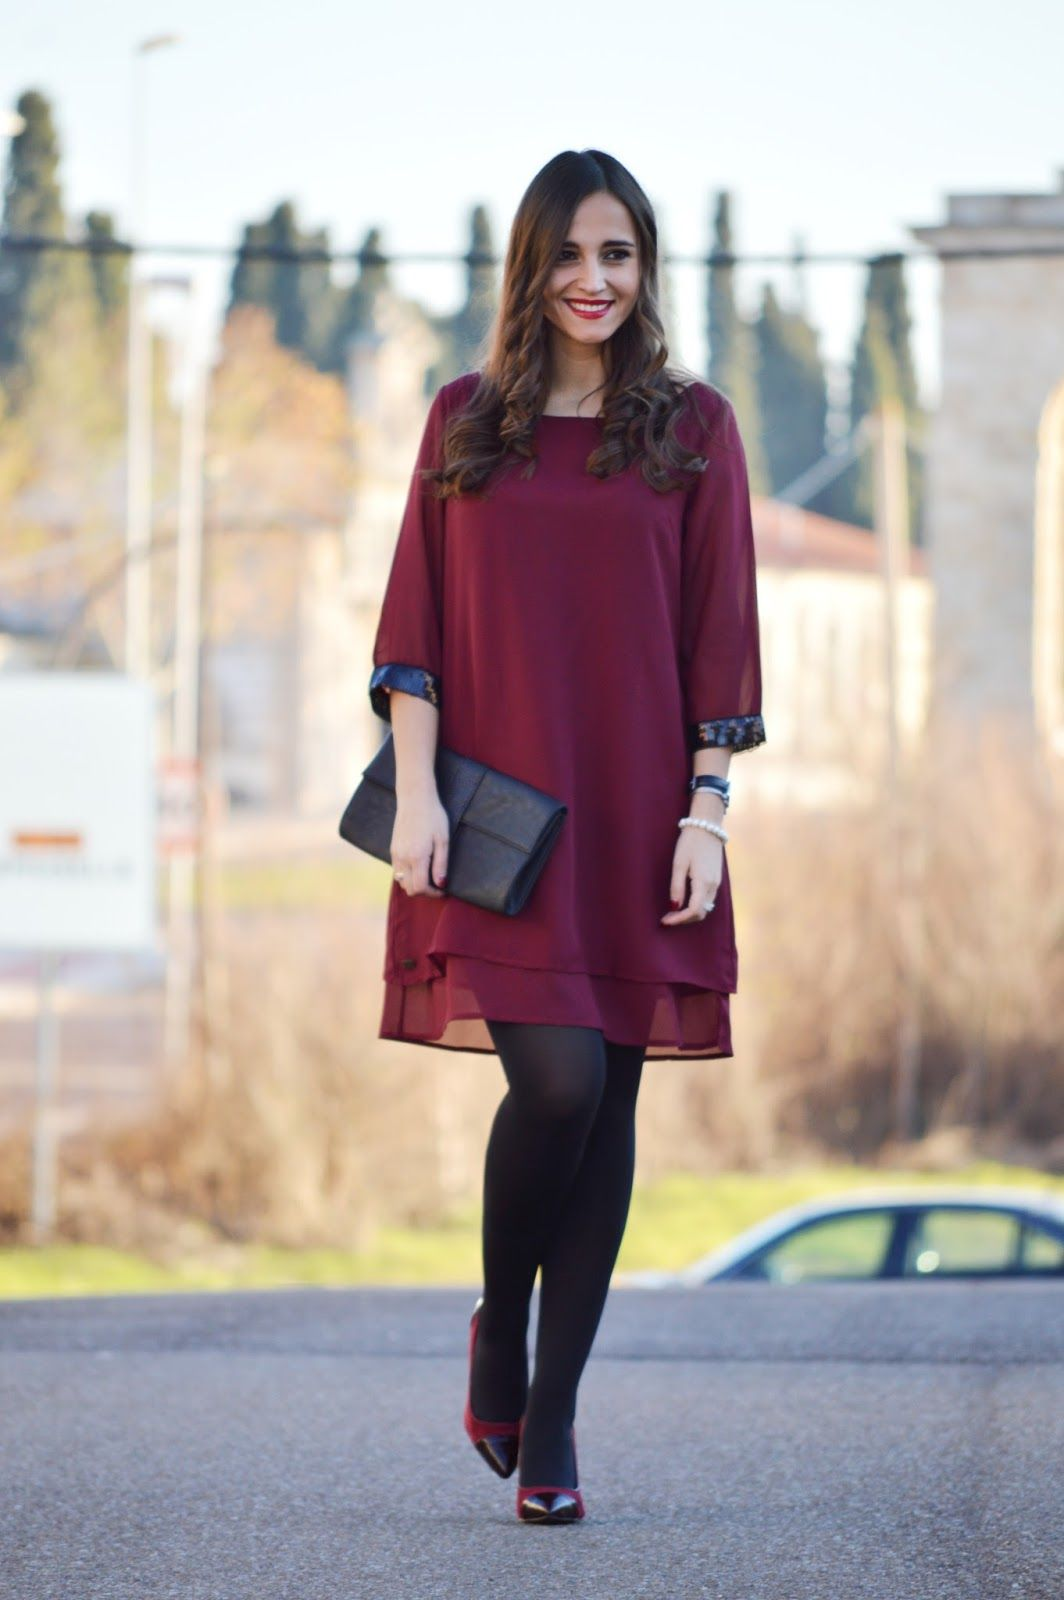 59a15385629 1000 MANERAS DE VESTIR: From Jaipur. Burgundy dress with black ...